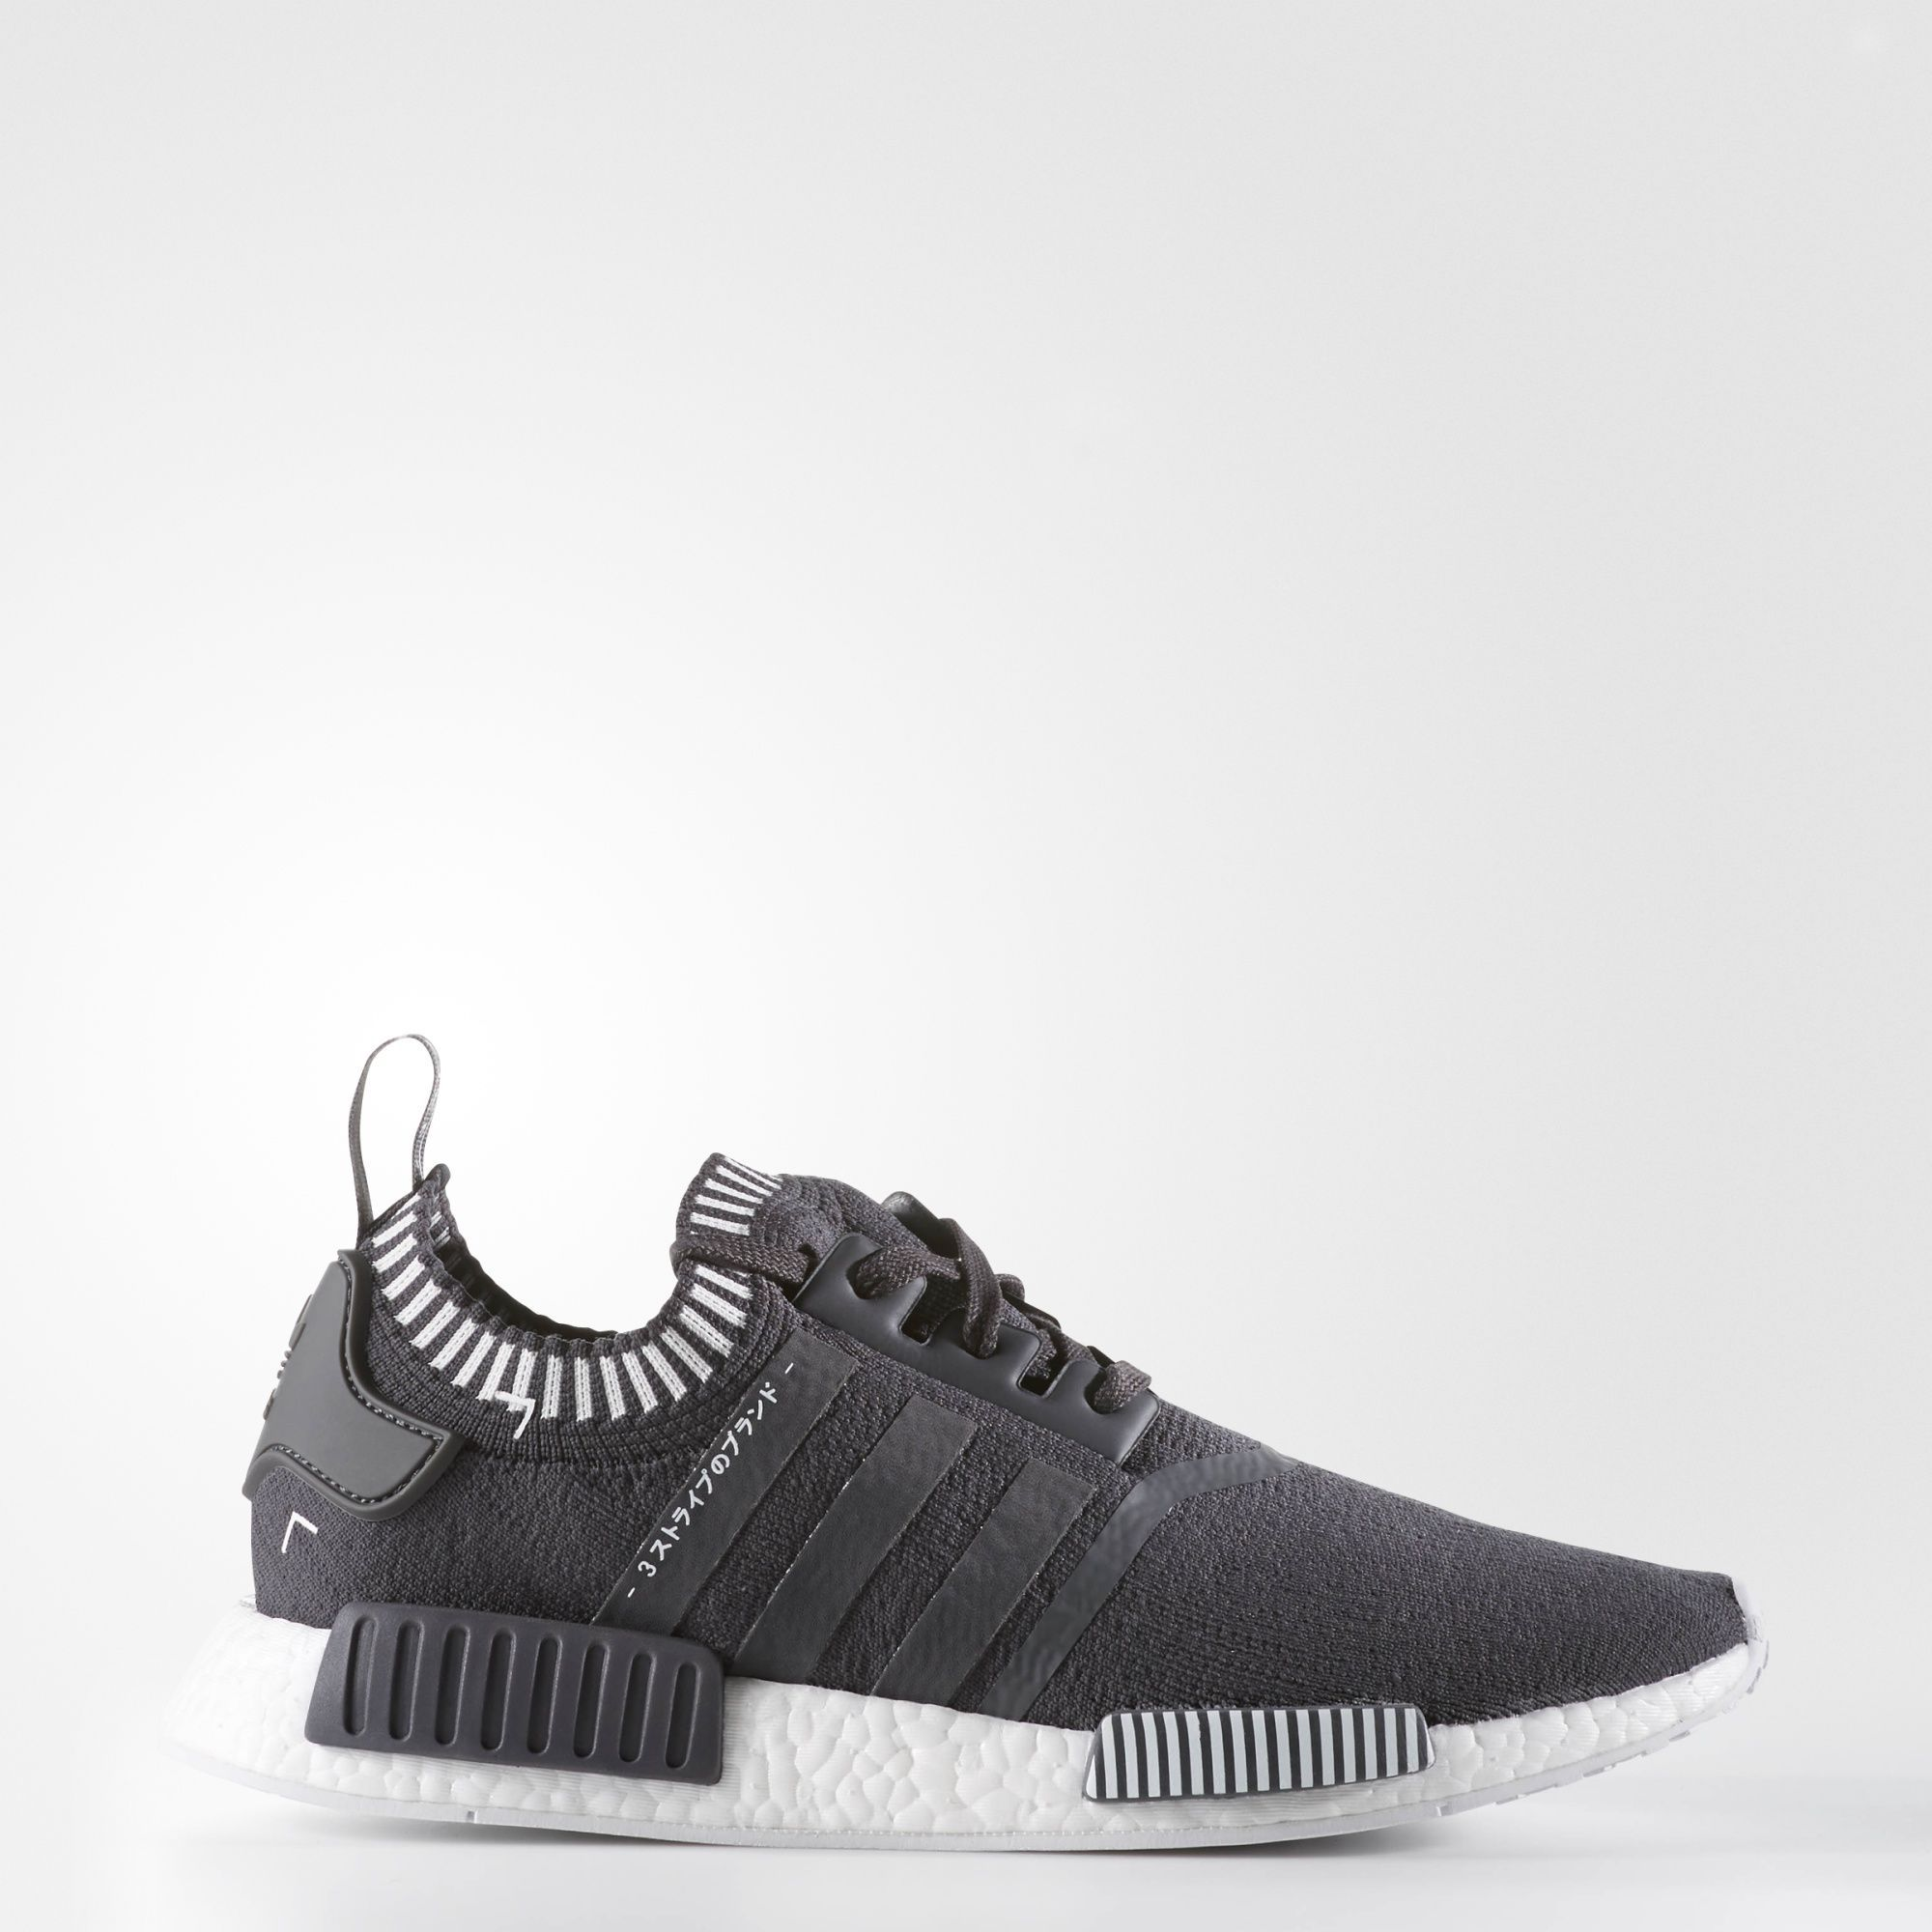 Pinterest Adidas Nmd r1 Primeknit Sneakers Shoes Nmd XwSpfwqHW